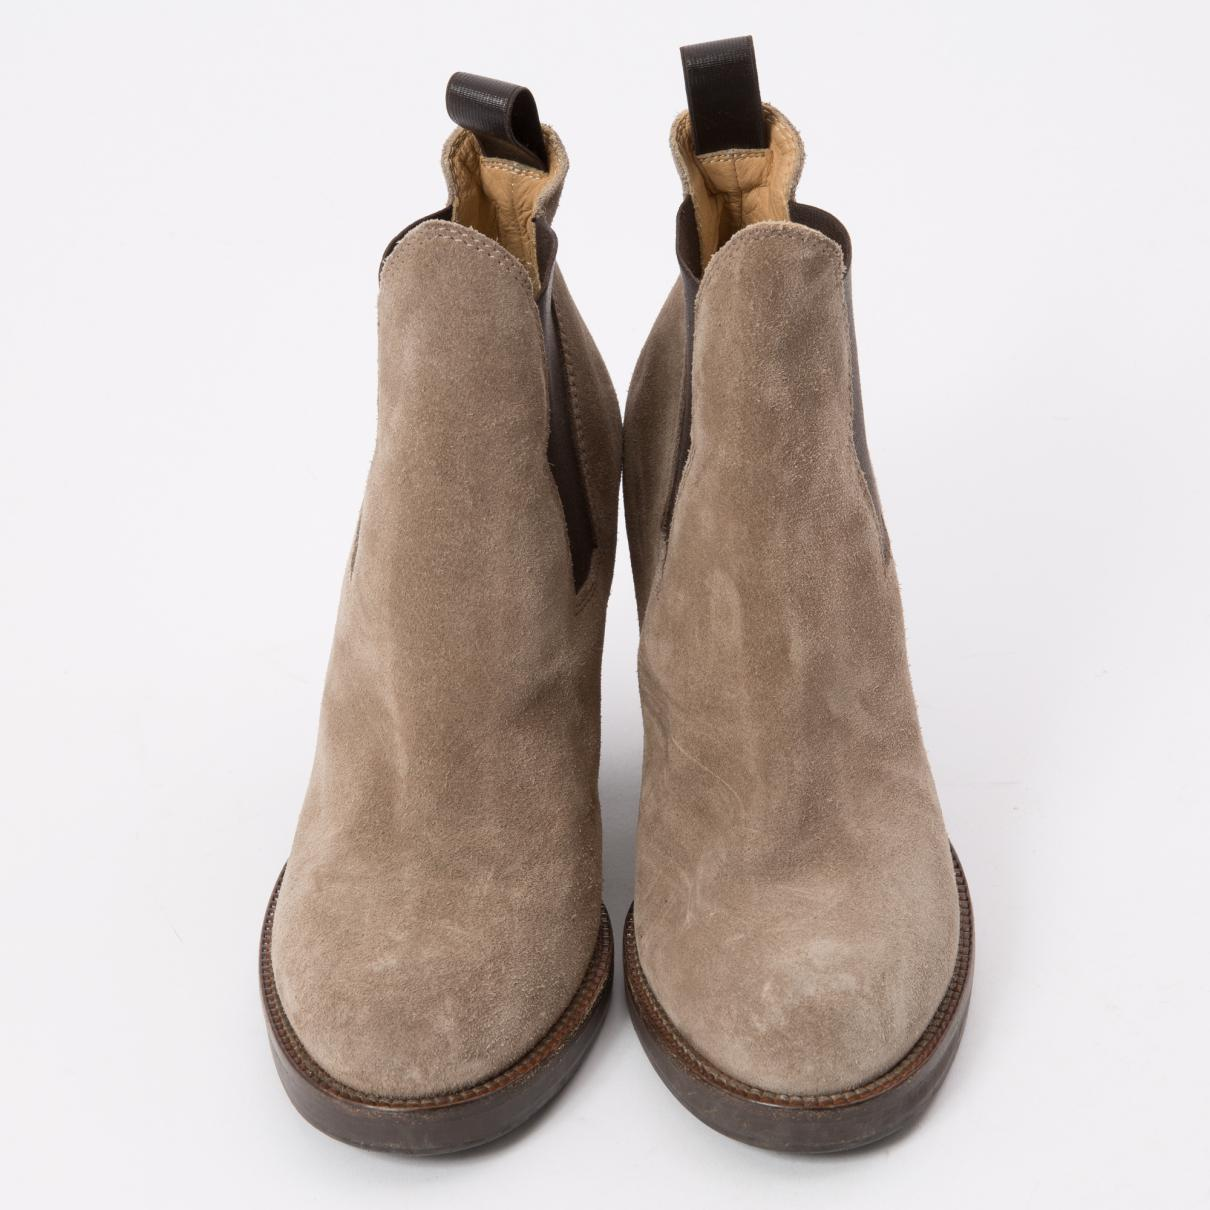 Acne Studios Pre-owned Star Grey Suede Ankle Boots in Grey